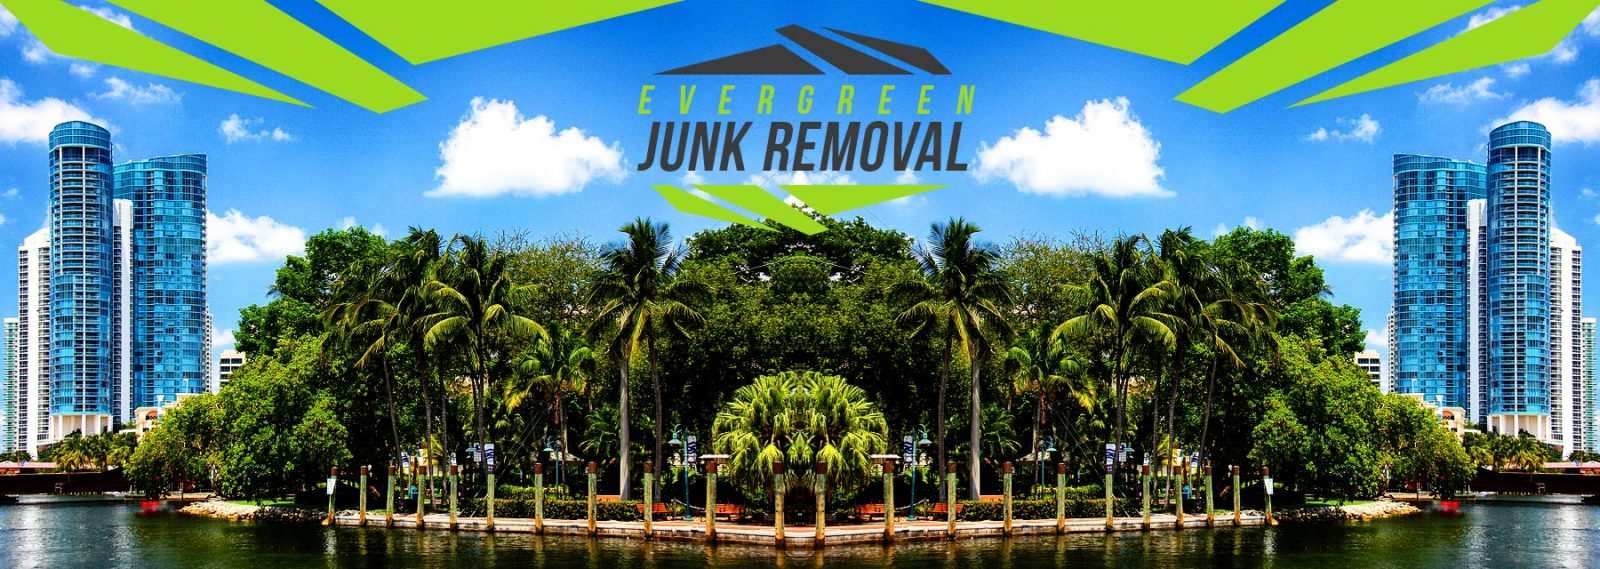 Palm Beach Shores Hot Tub Removal Company